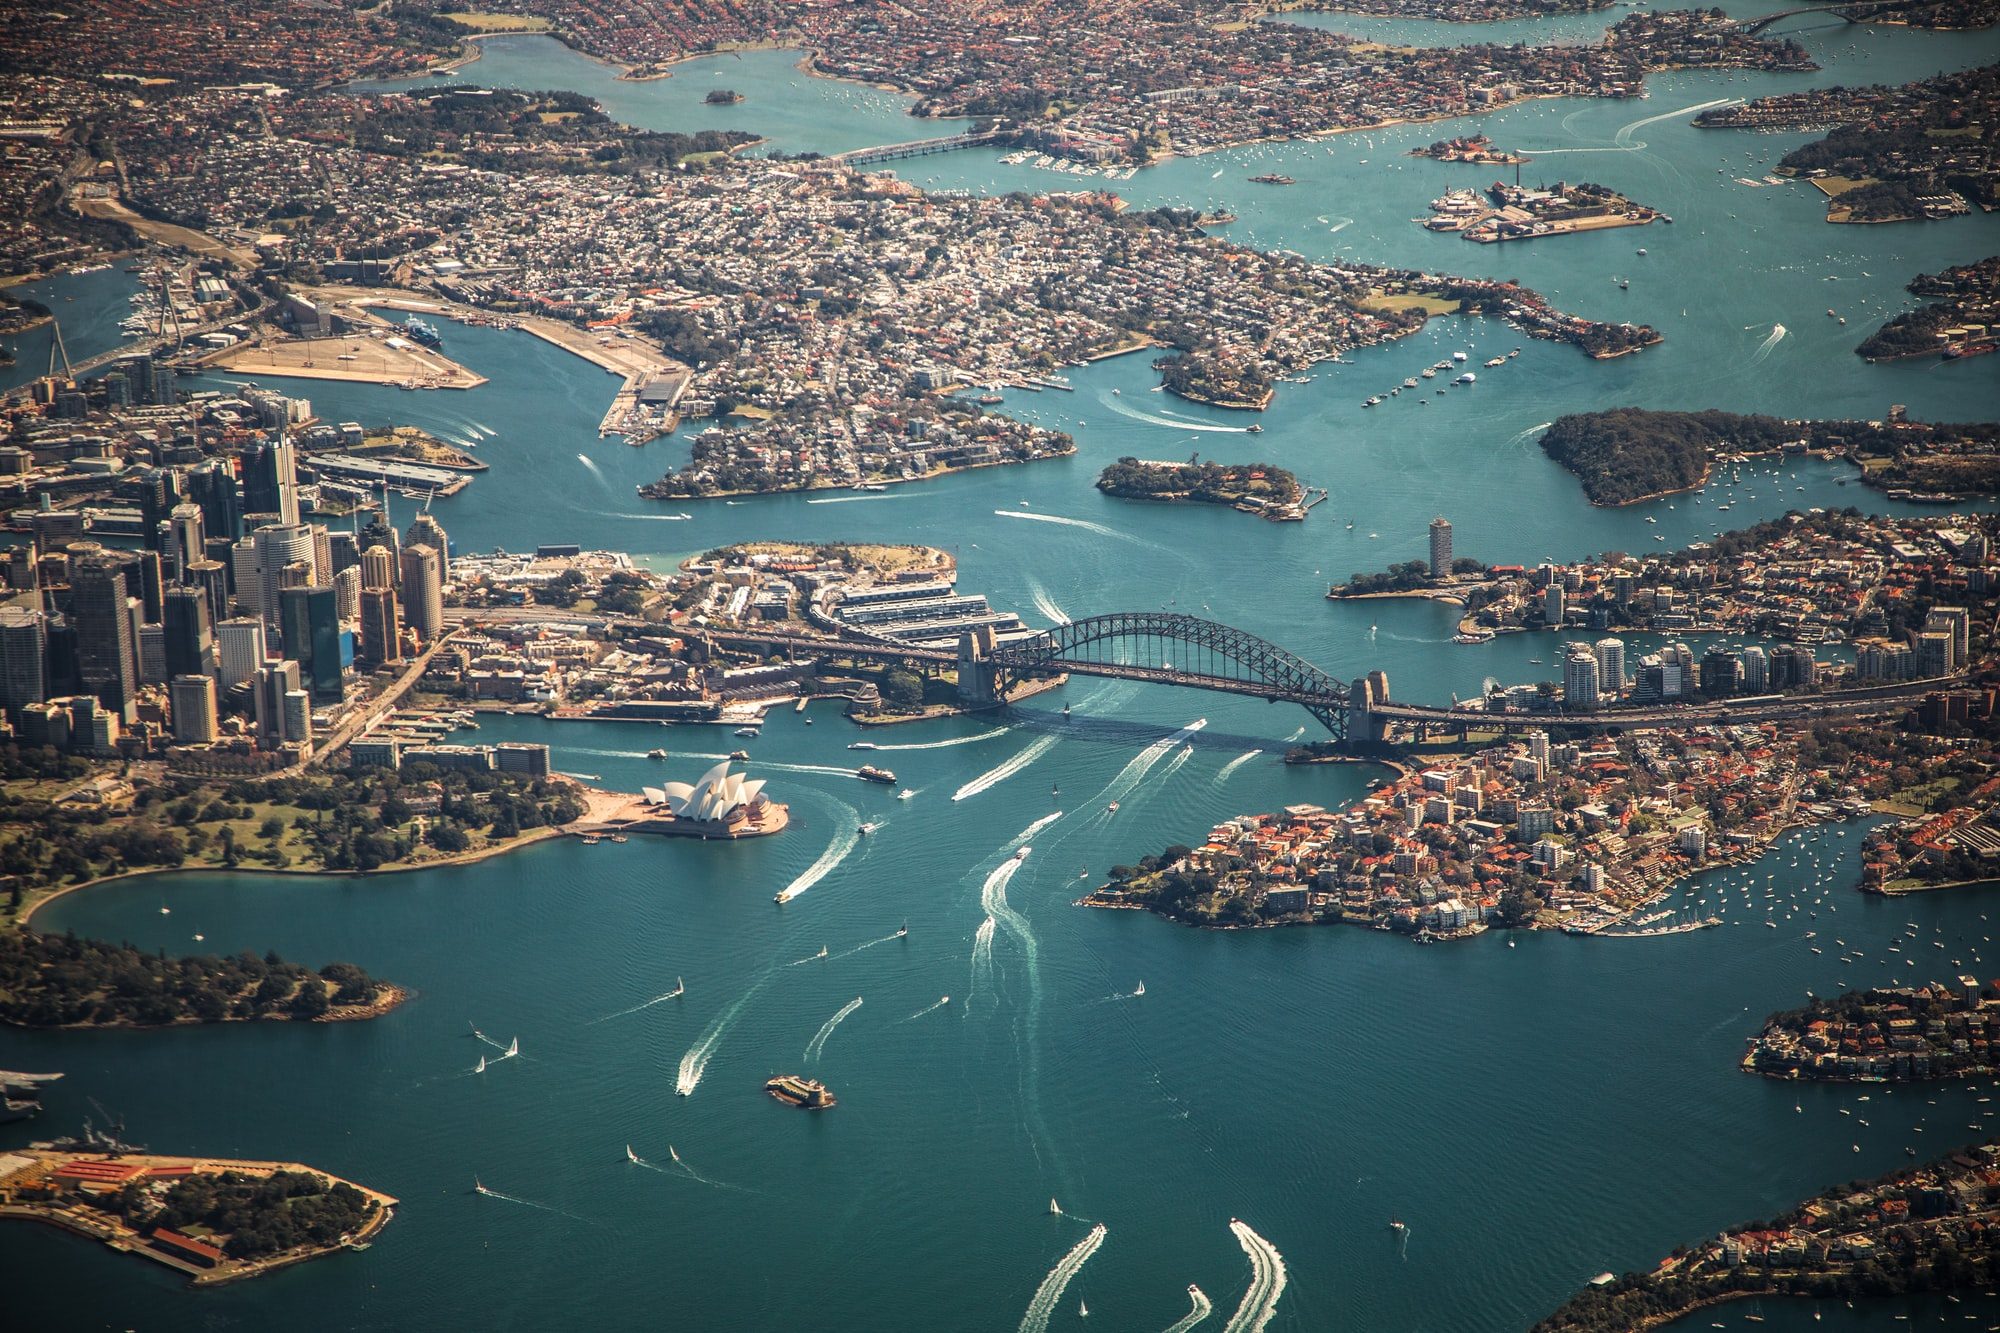 Sydney Travel Guide: 30 things you need to know for an awesome trip